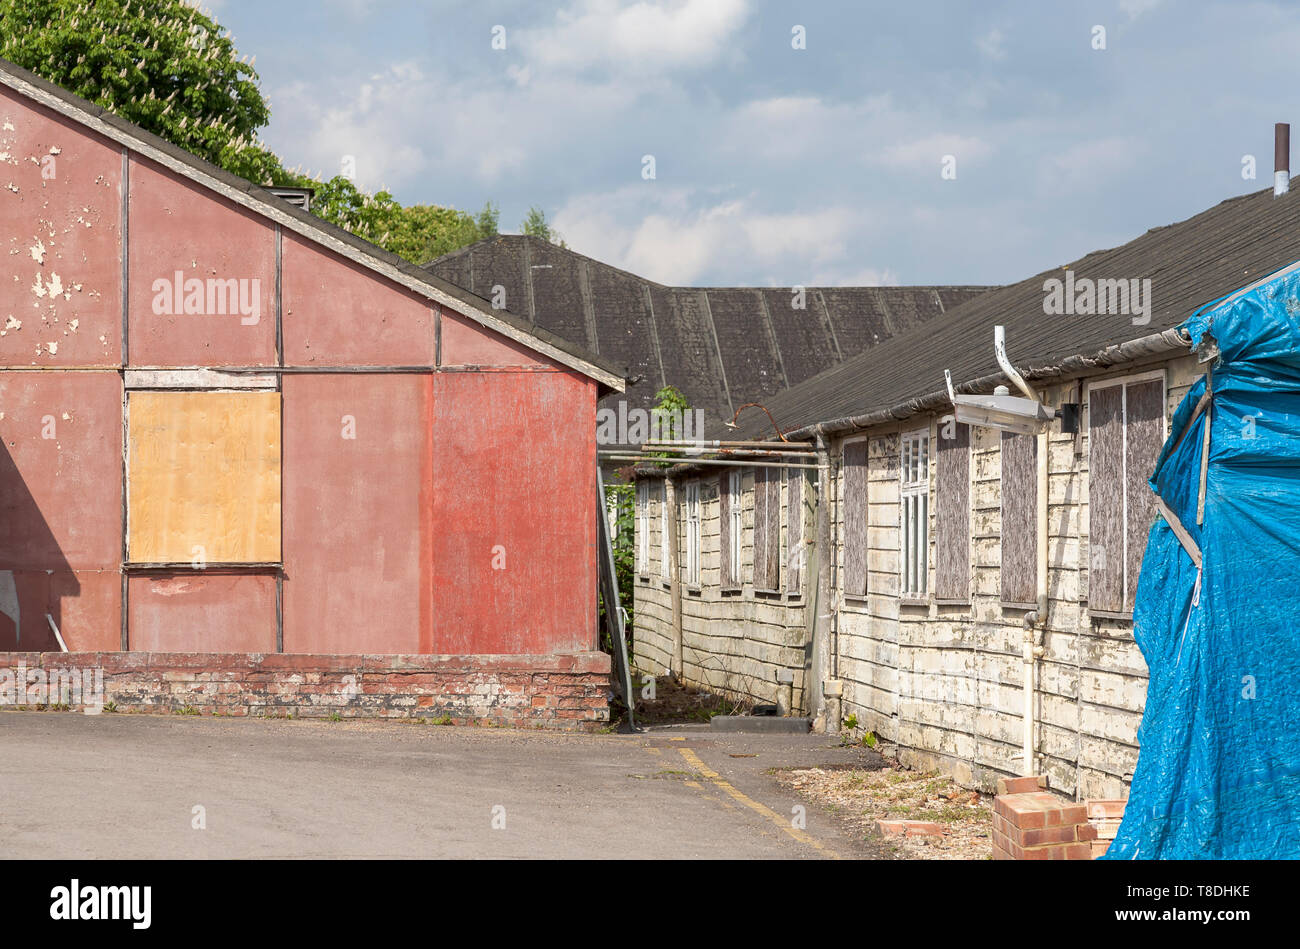 Sides of Hut 3 and Hut 6 at Bletchley Park, once the top-secret home of the World War Two Codebreakers, now a leading heritage attraction - Stock Image